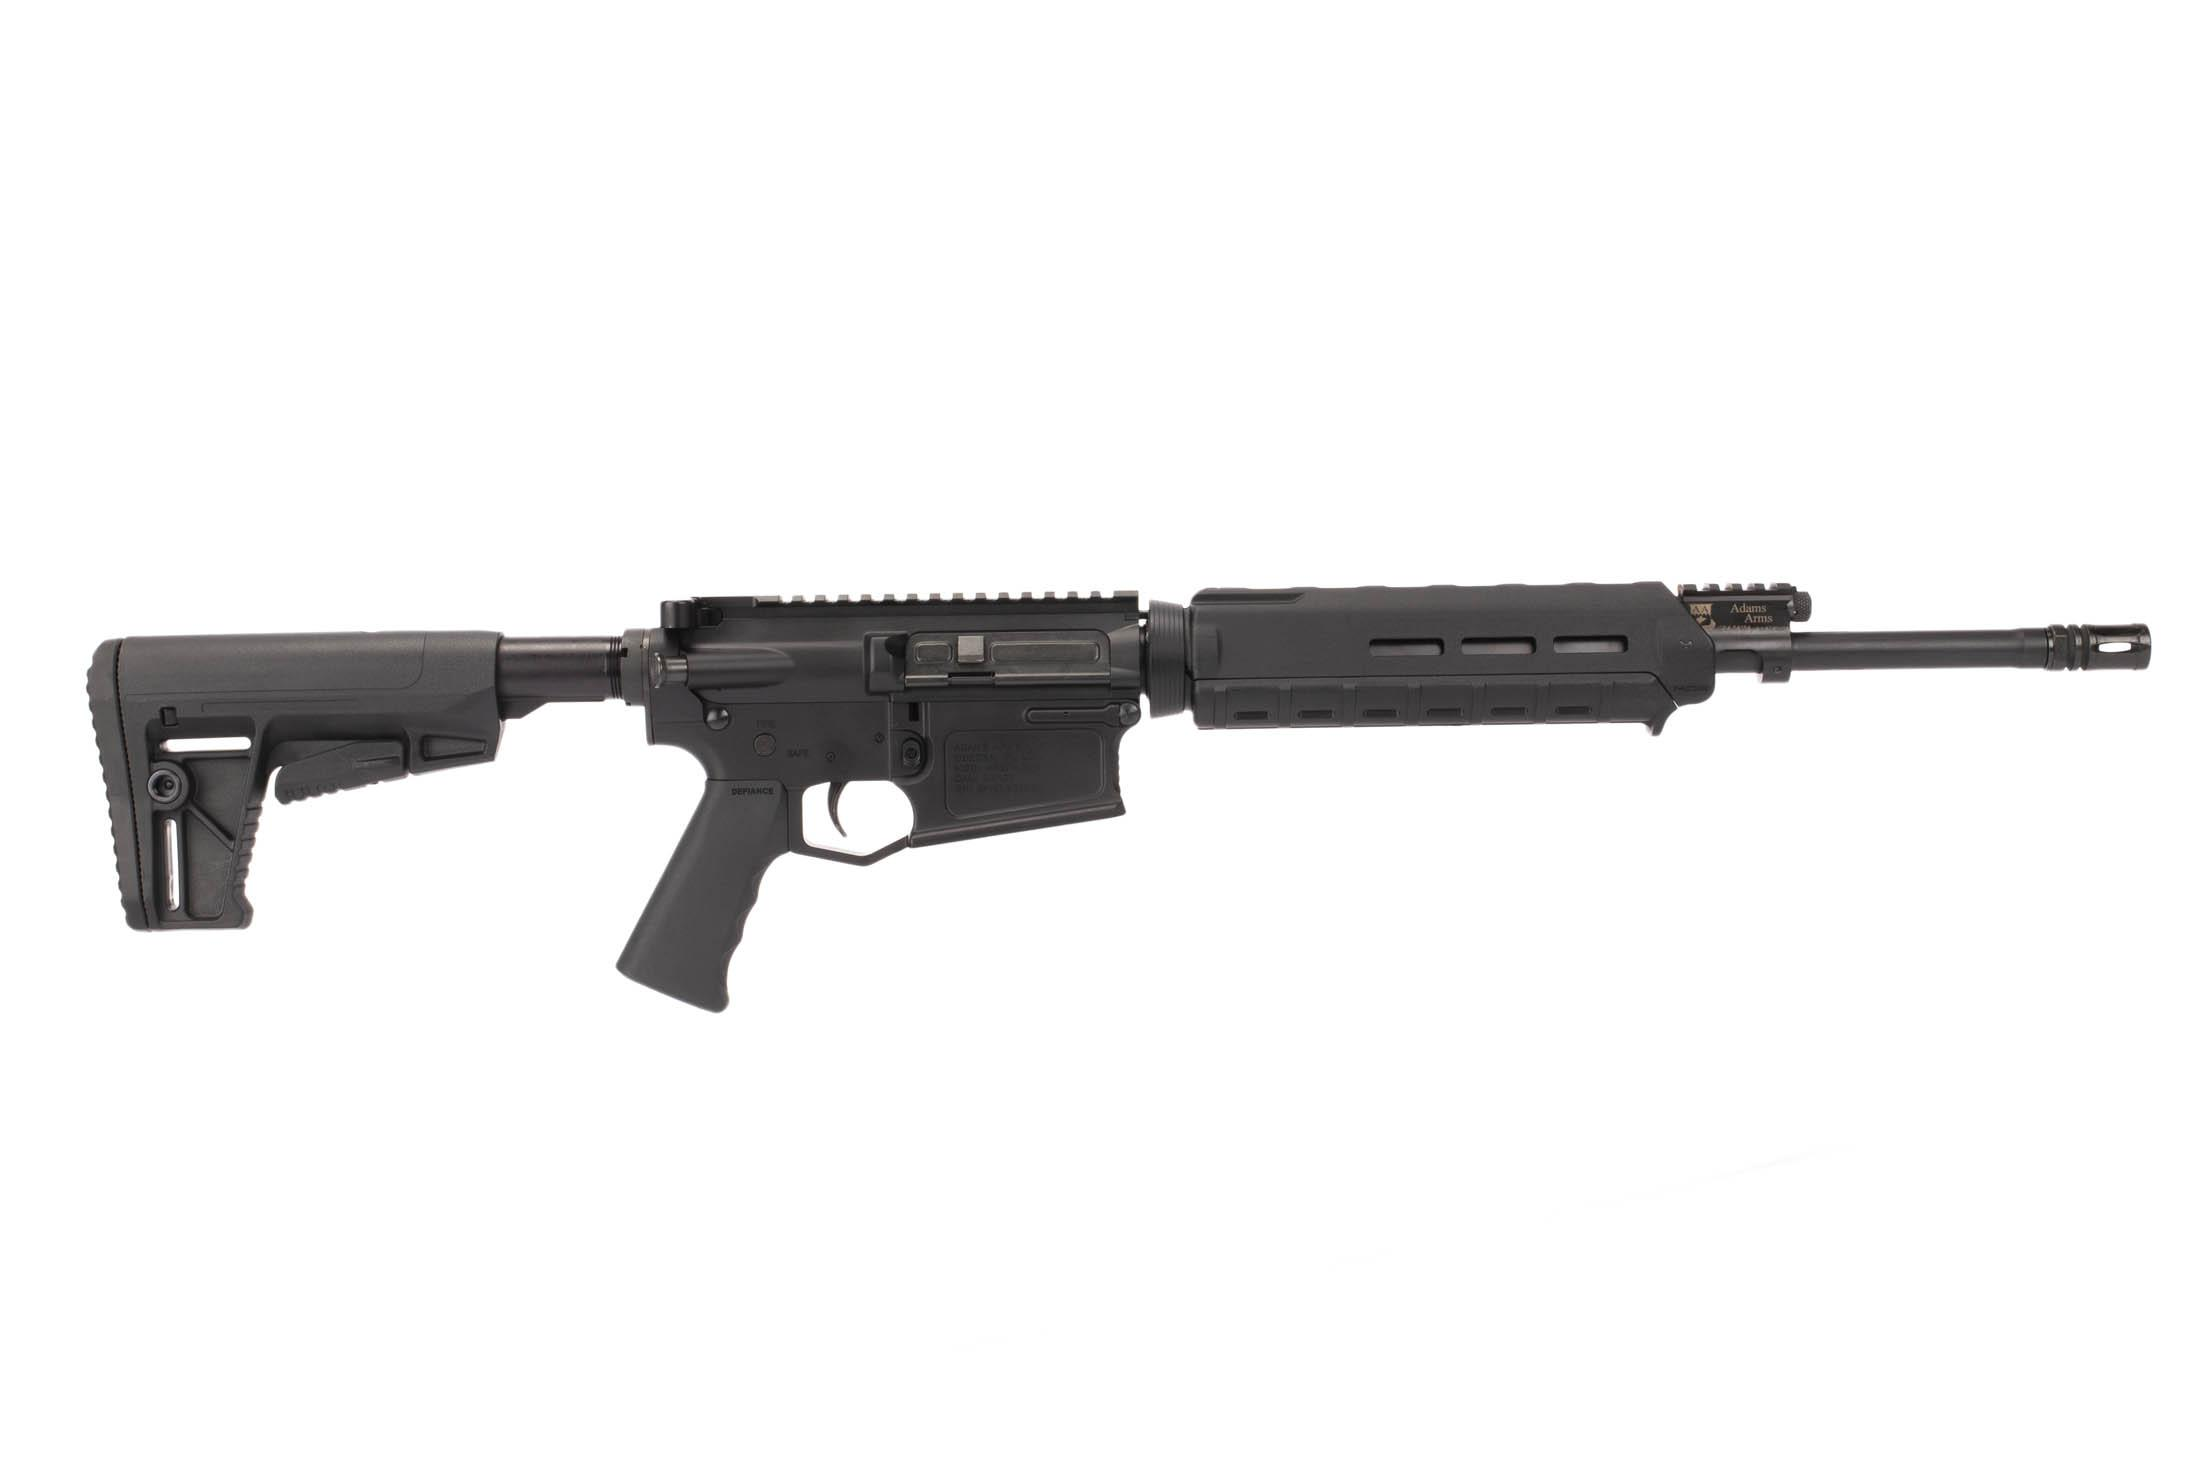 Adams Arms 16in 5.56 Short Stroke Gas Piston AR-10 rifle with mid-length gas system